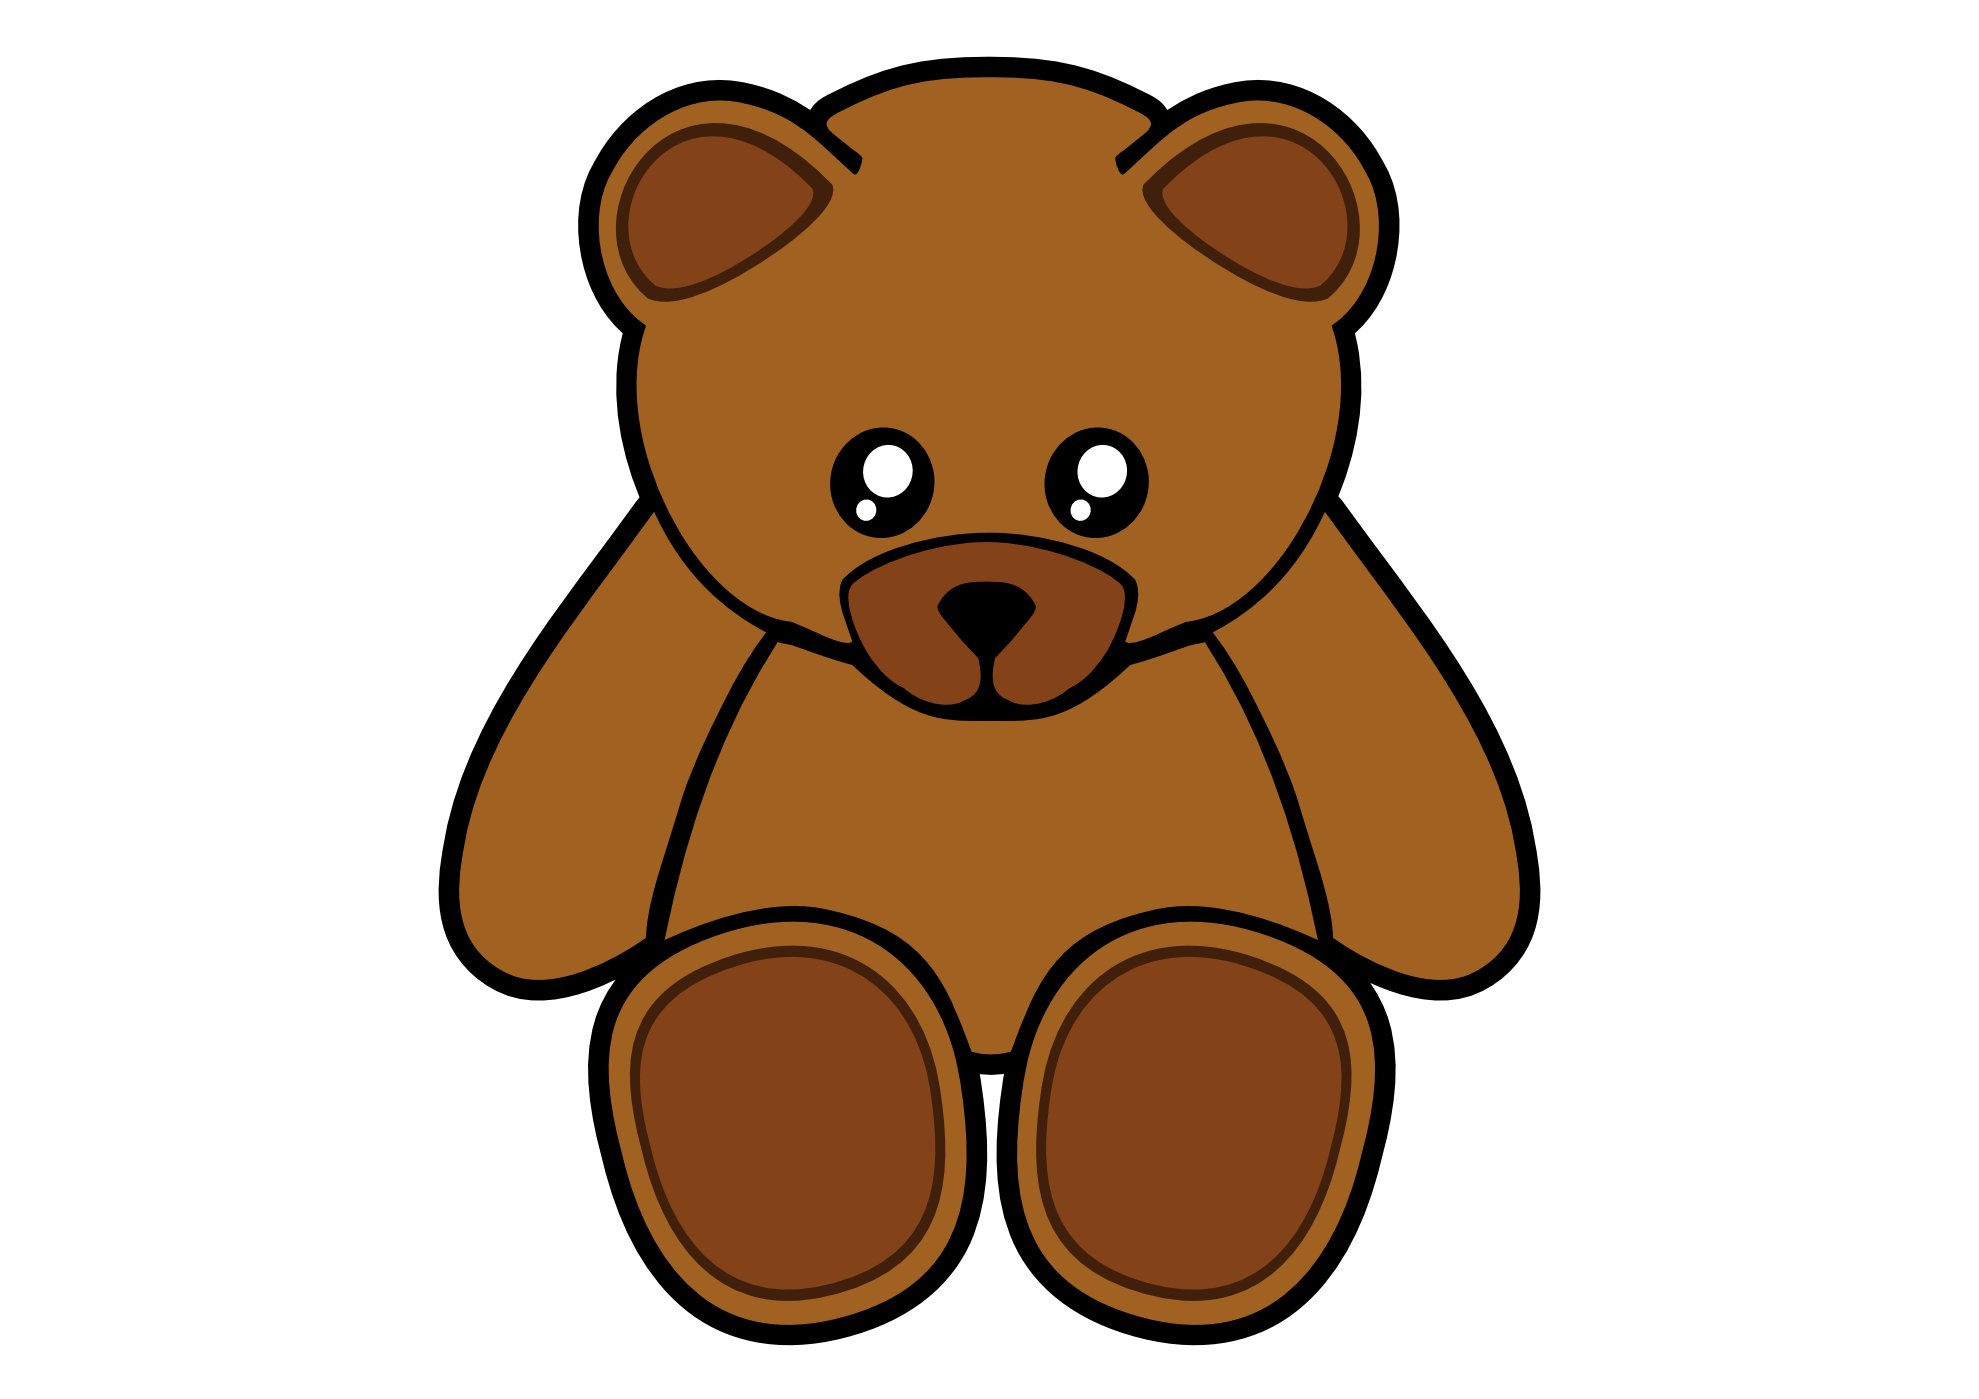 3 brown bears clipart graphic free library Bear Clipart Free | Free download best Bear Clipart Free on ... graphic free library